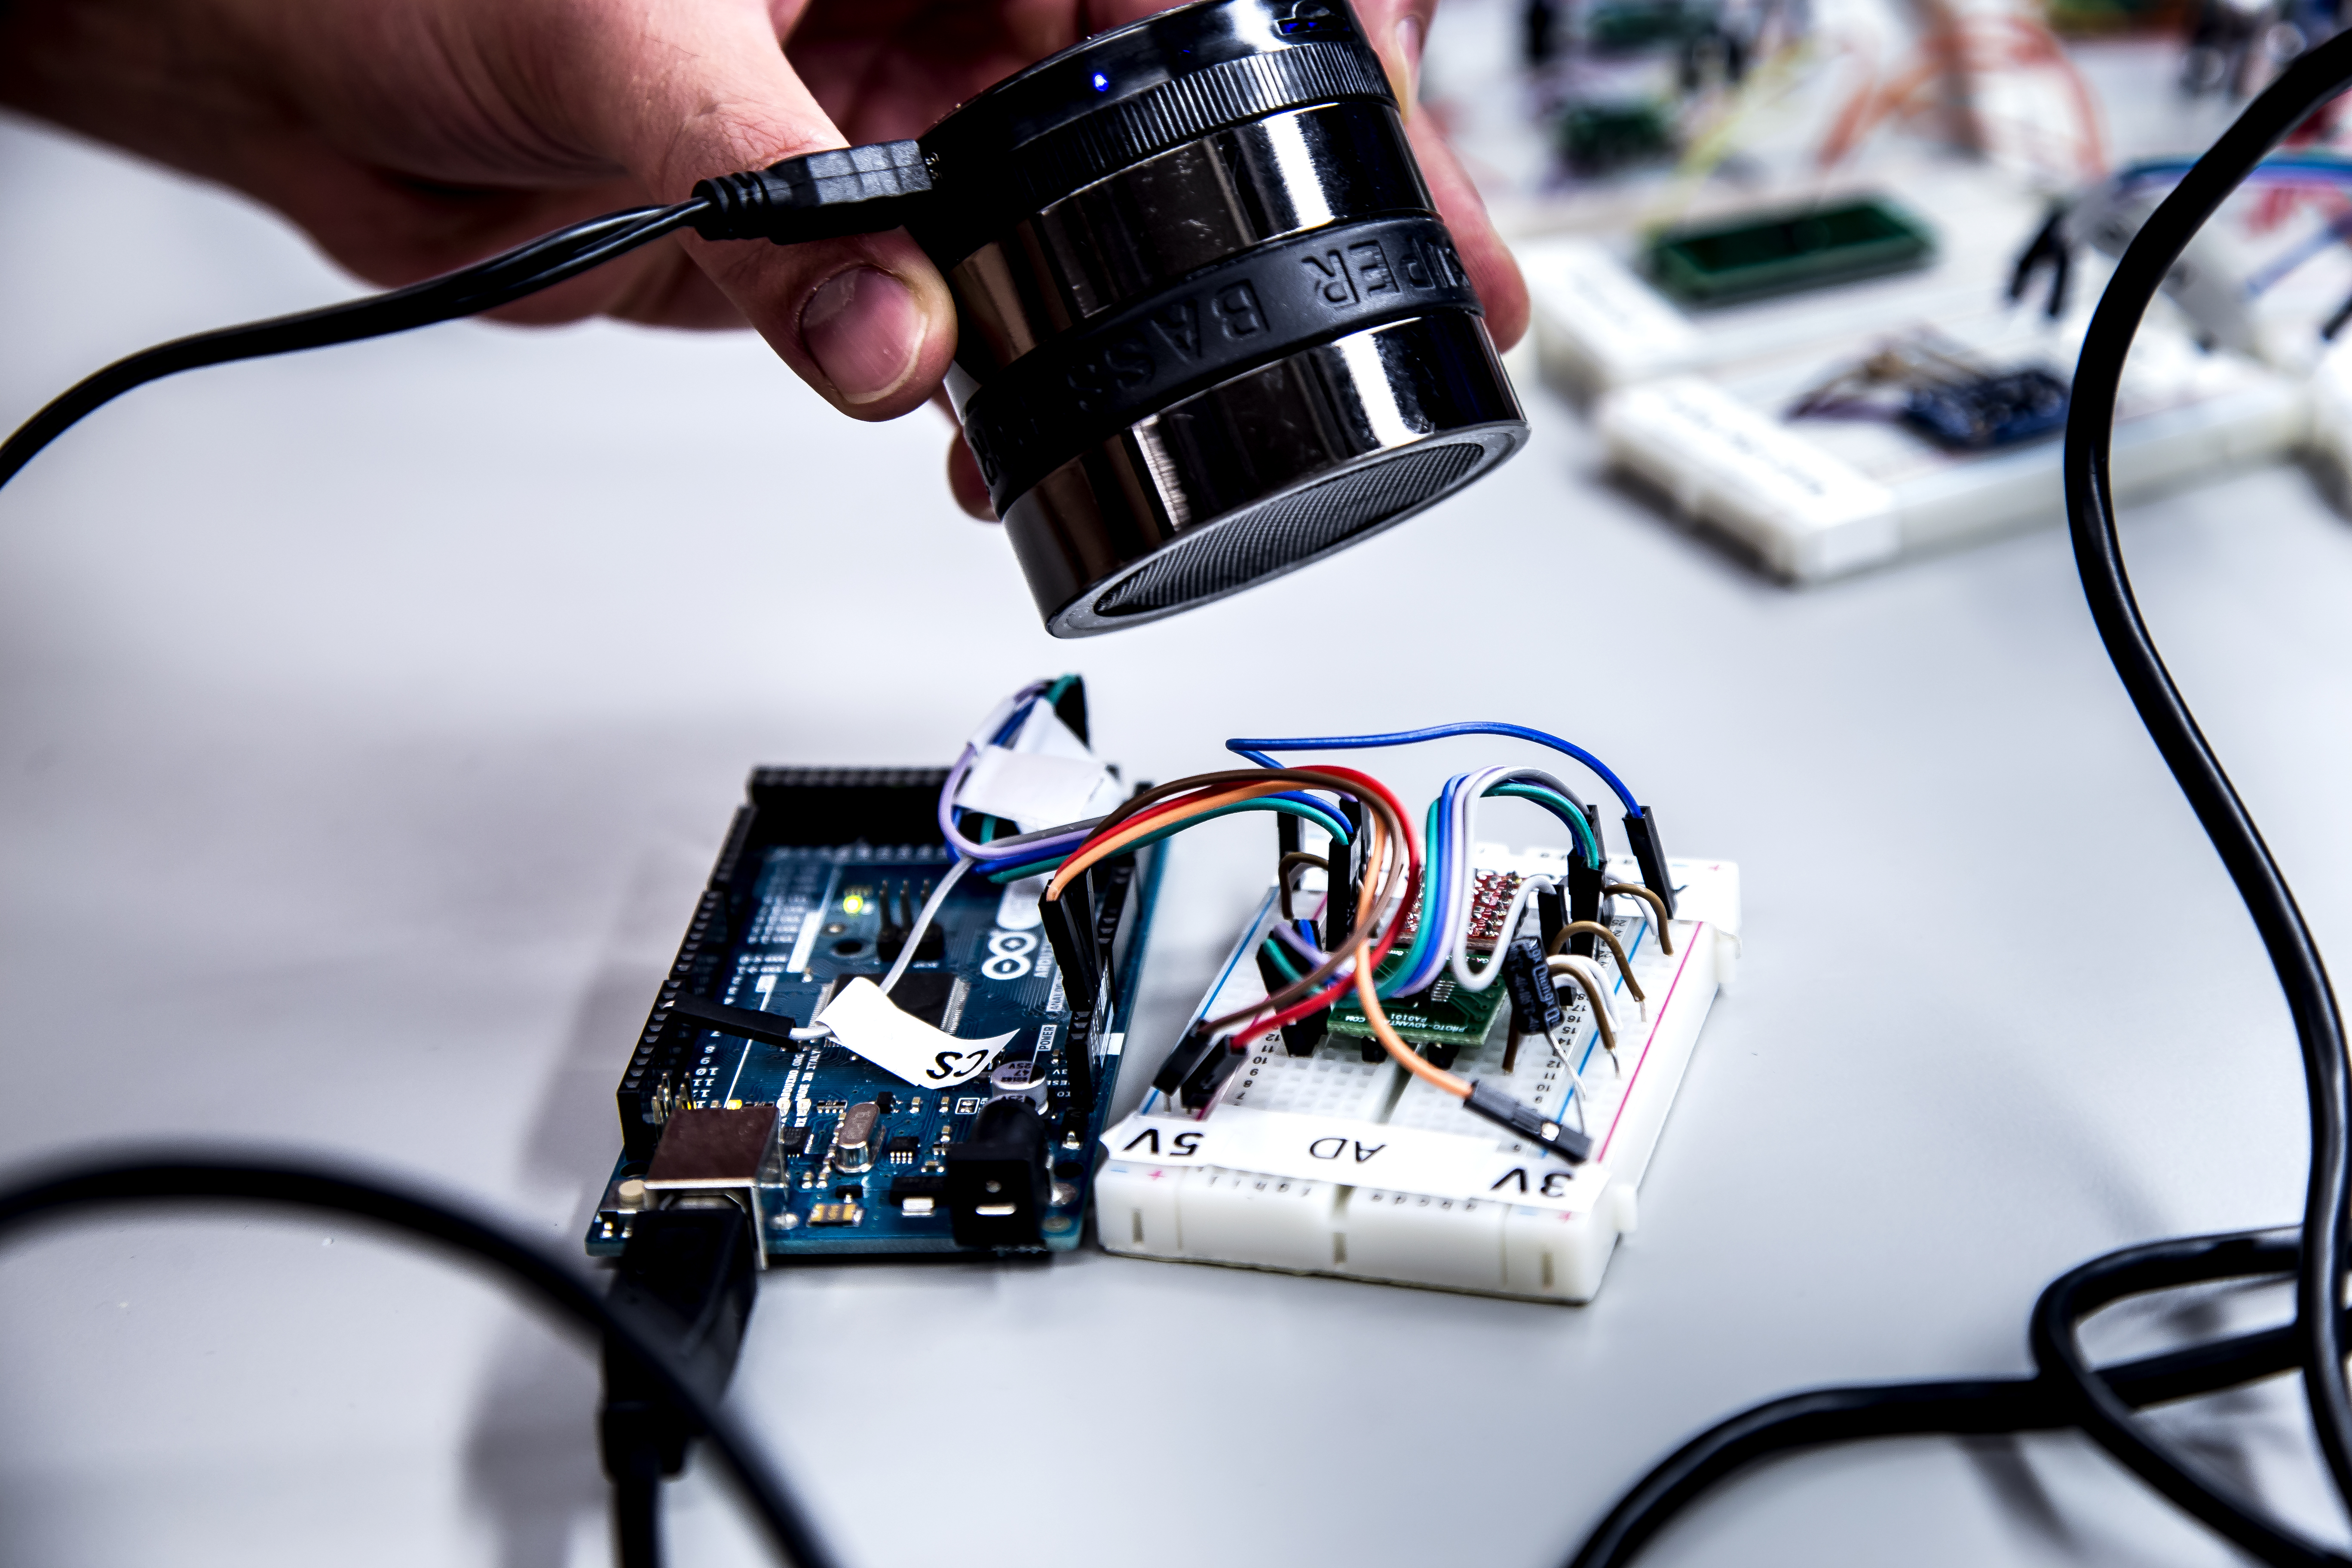 A University of Michigan researcher points a speaker at an accelerometer, which can send false readings to a phone, fitness tracker or other device.